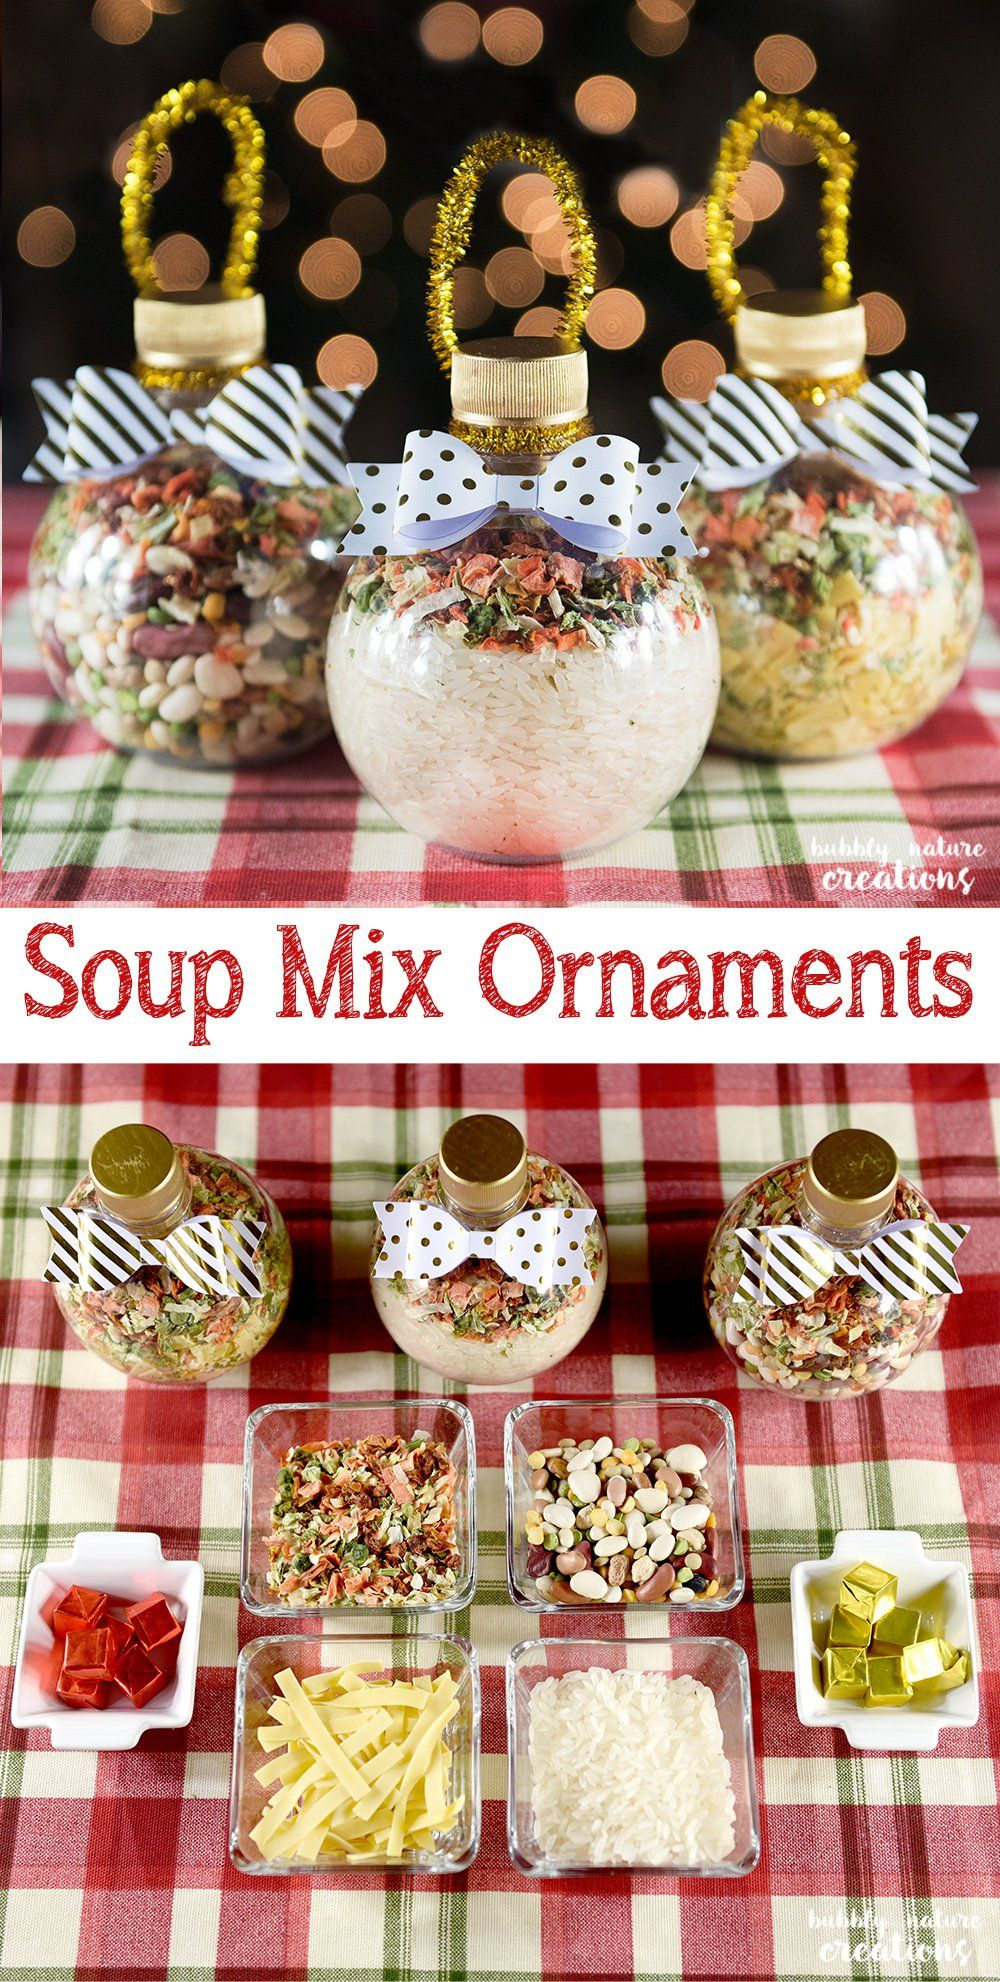 Soup Mix Ornaments #diychristmasgifts